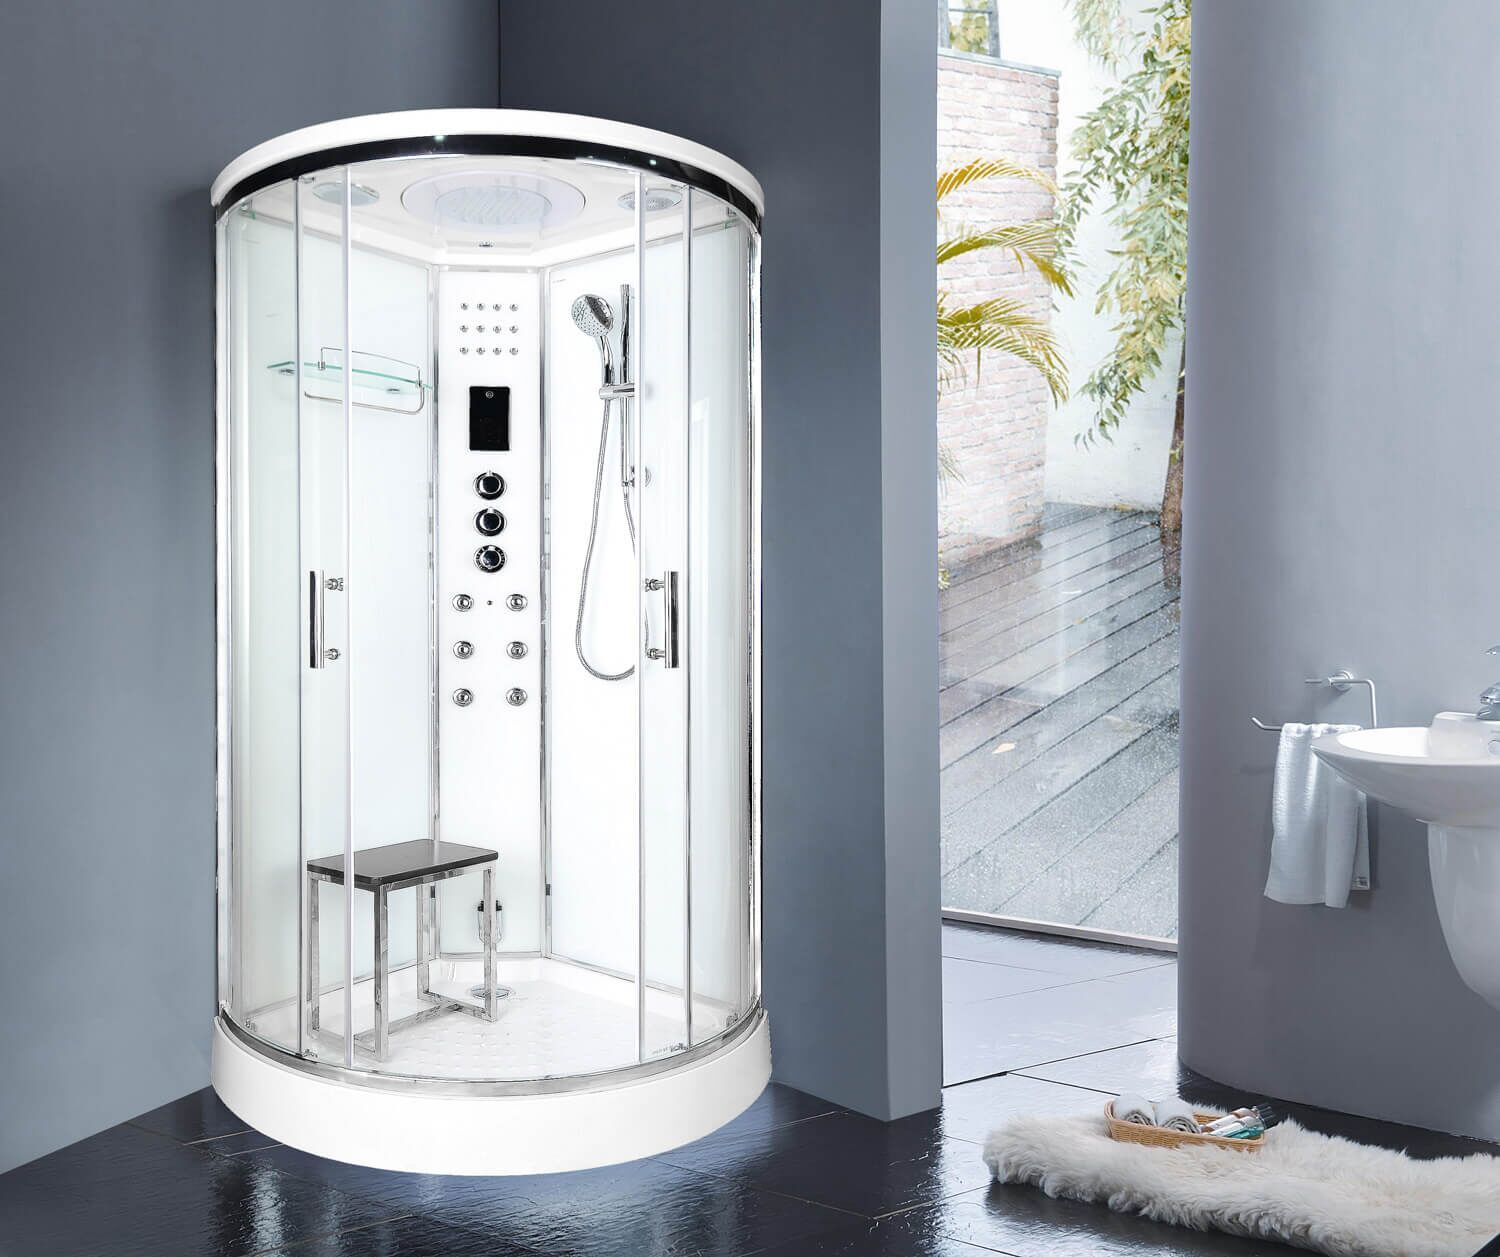 Lisna Waters Lwsl02 800mm Steam Shower White Smart Price